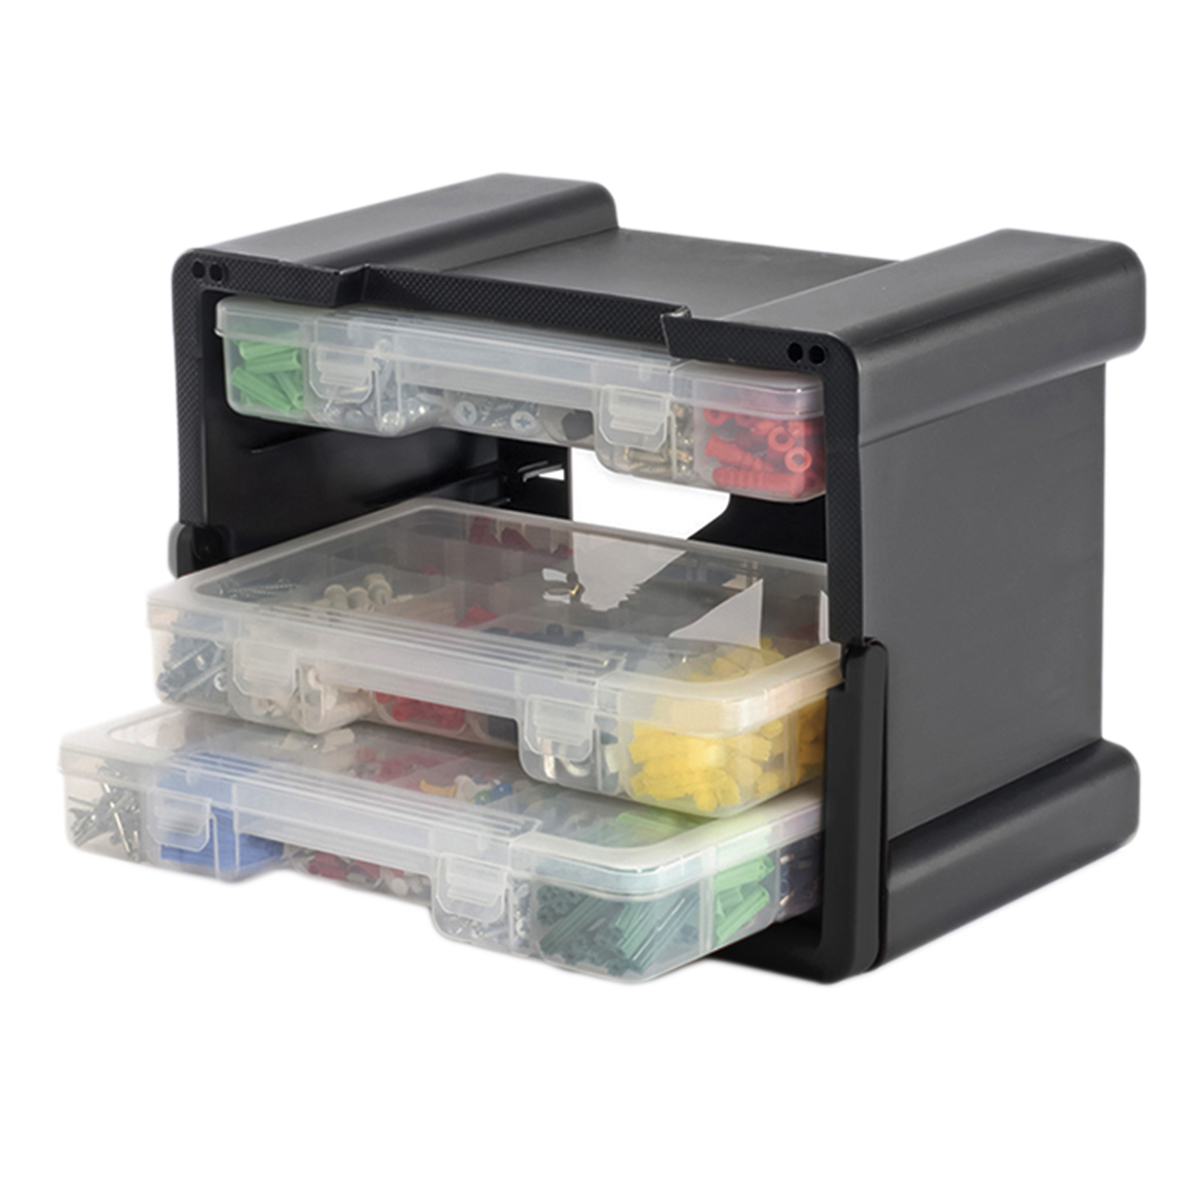 Plastic Portable Storage : Keter drawer organizer case portable handled plastic